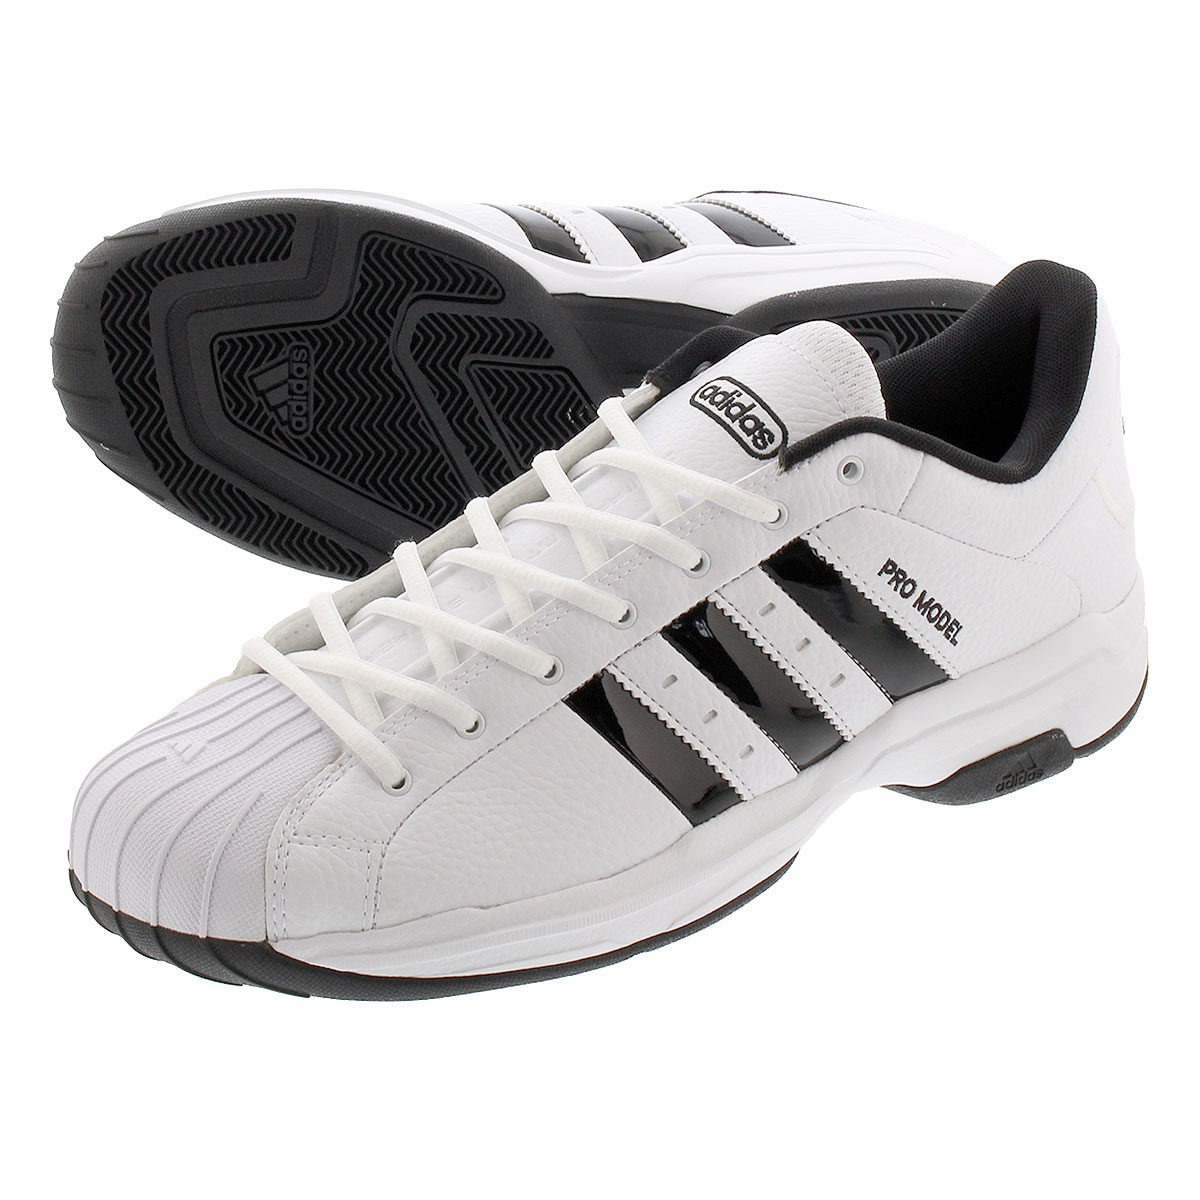 メンズ靴, スニーカー adidas PRO MODEL 2G LOW 2G FTWR WHITECORE BLACKCORE BLACK fx4981